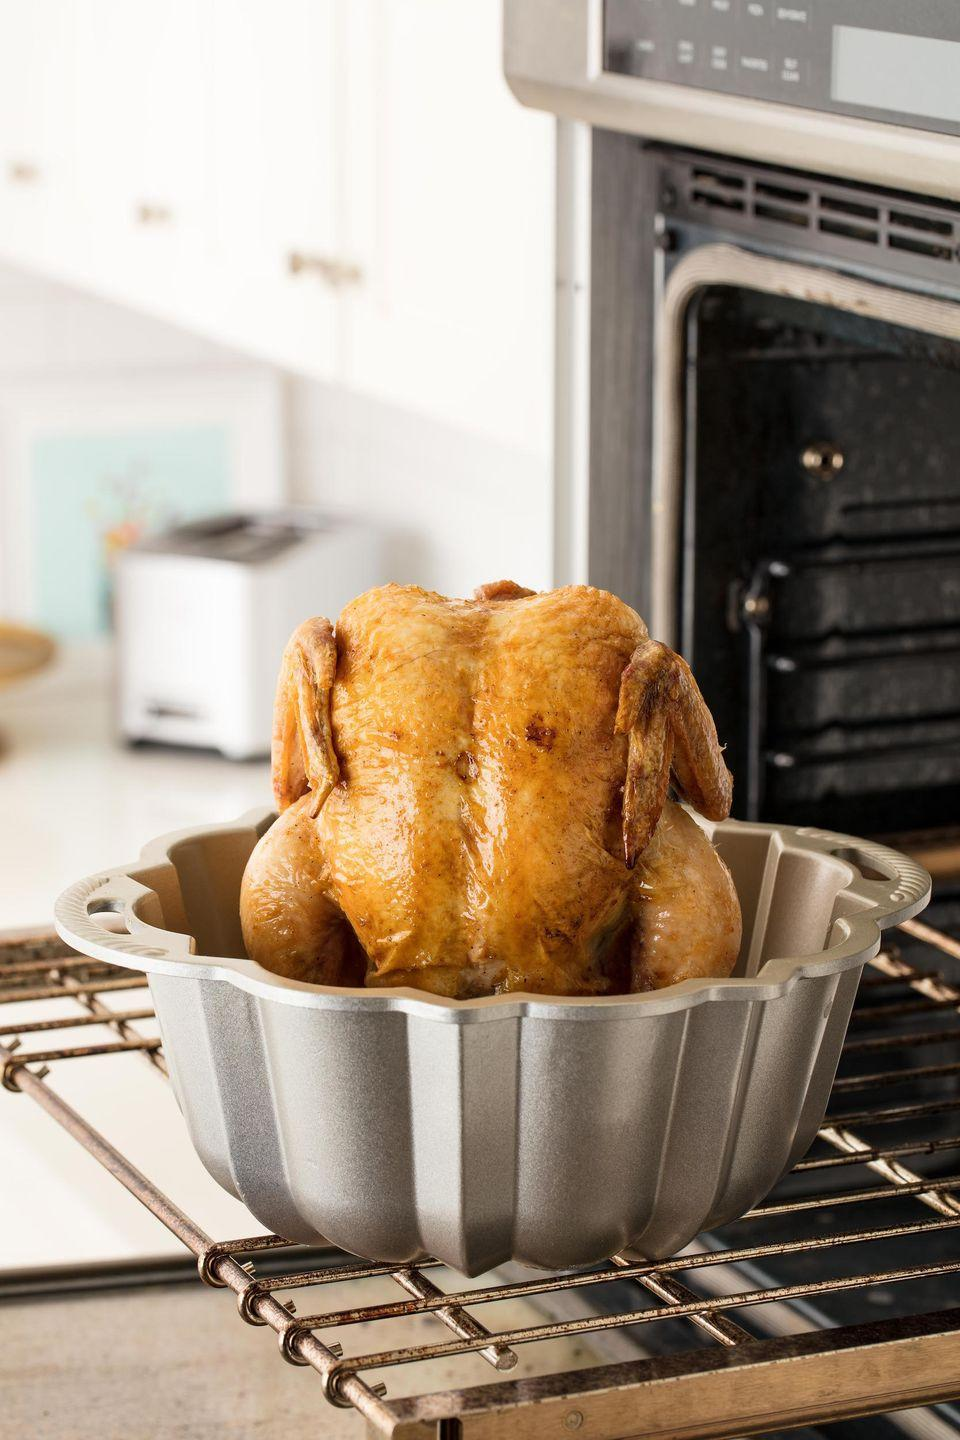 "<p>This easy hack results in a perfect roast chicken, and the veggies to go along with it!</p><p>Get the recipe from <a href=""https://www.delish.com/cooking/recipe-ideas/recipes/a51763/bundt-pan-roast-chicken-recipe/"" rel=""nofollow noopener"" target=""_blank"" data-ylk=""slk:Delish"" class=""link rapid-noclick-resp"">Delish</a>.</p>"